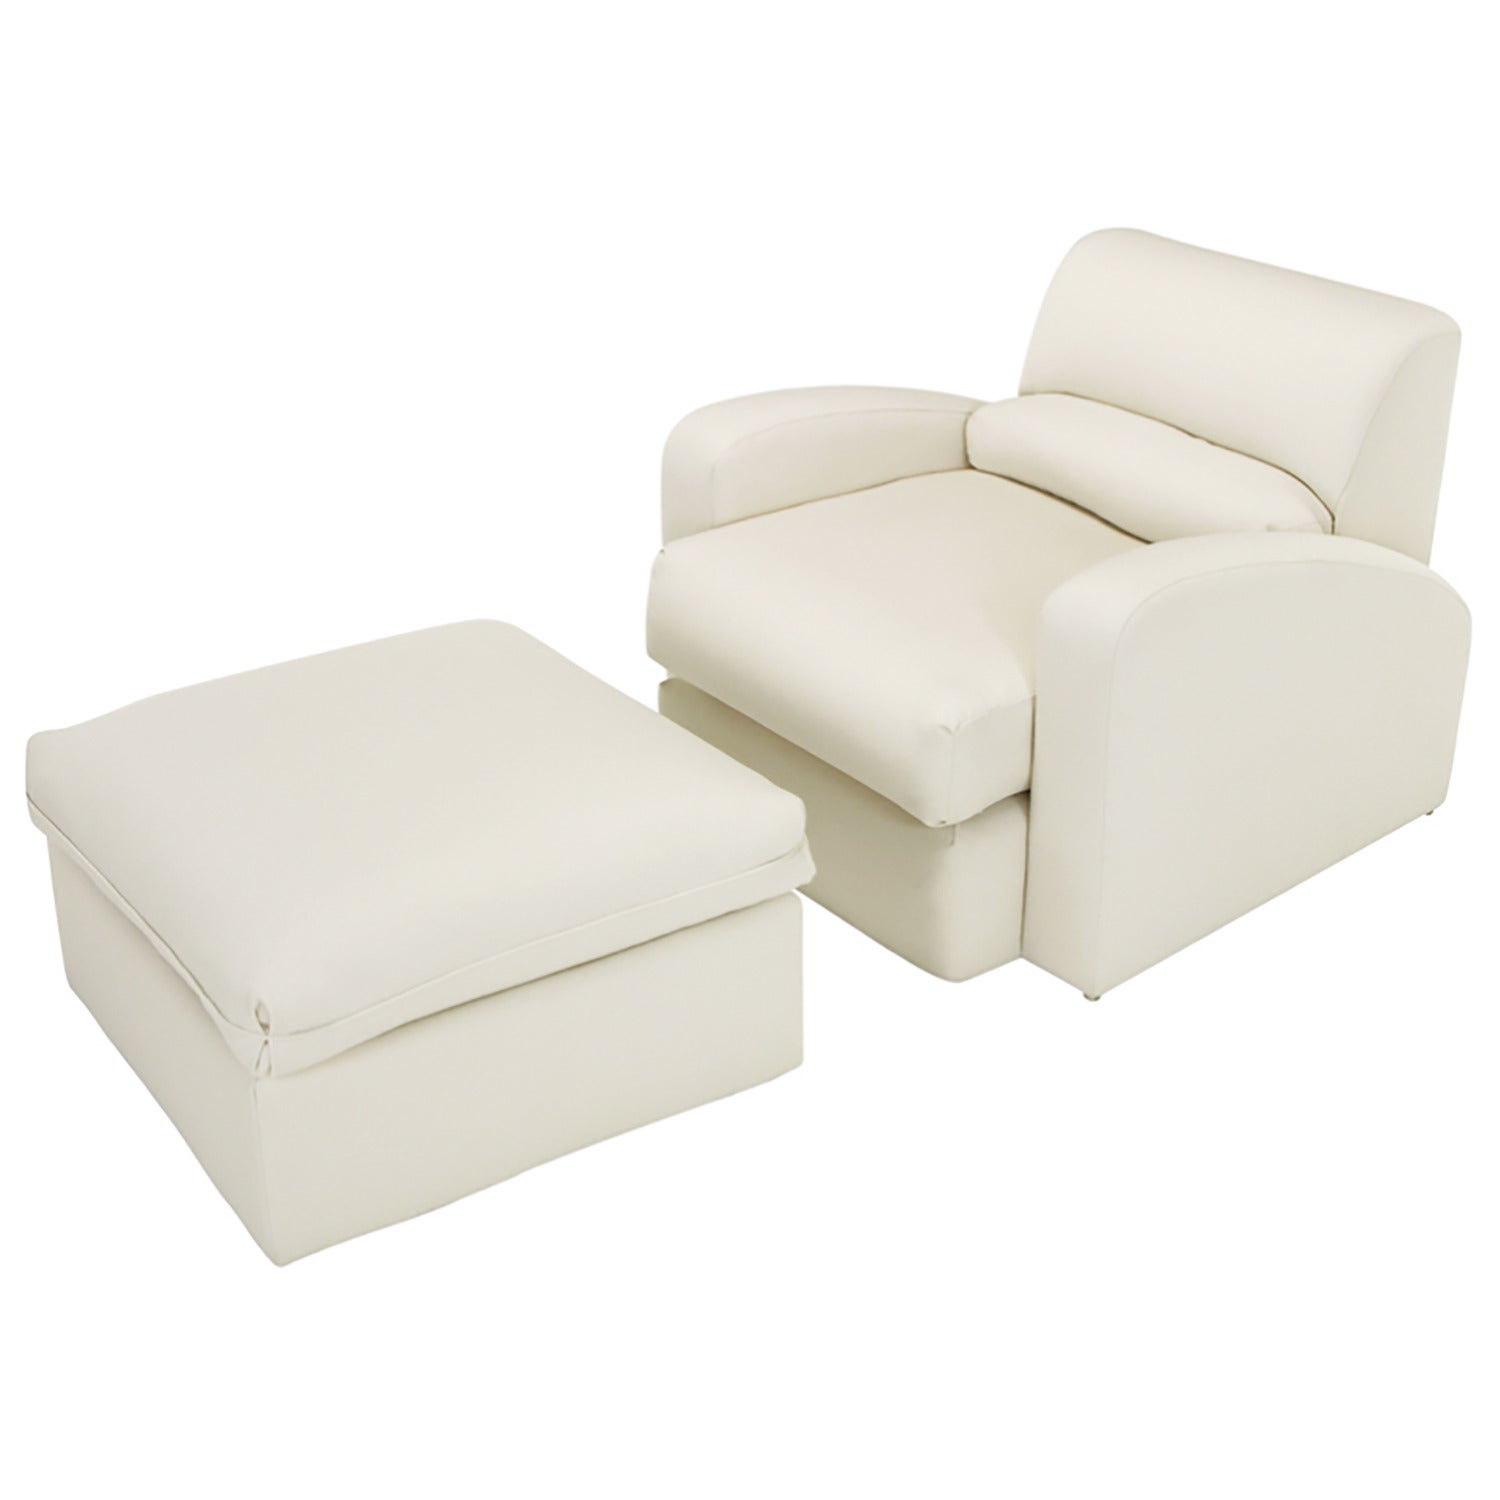 Jay Spectre Steamer Lounge Chair with Ottoman